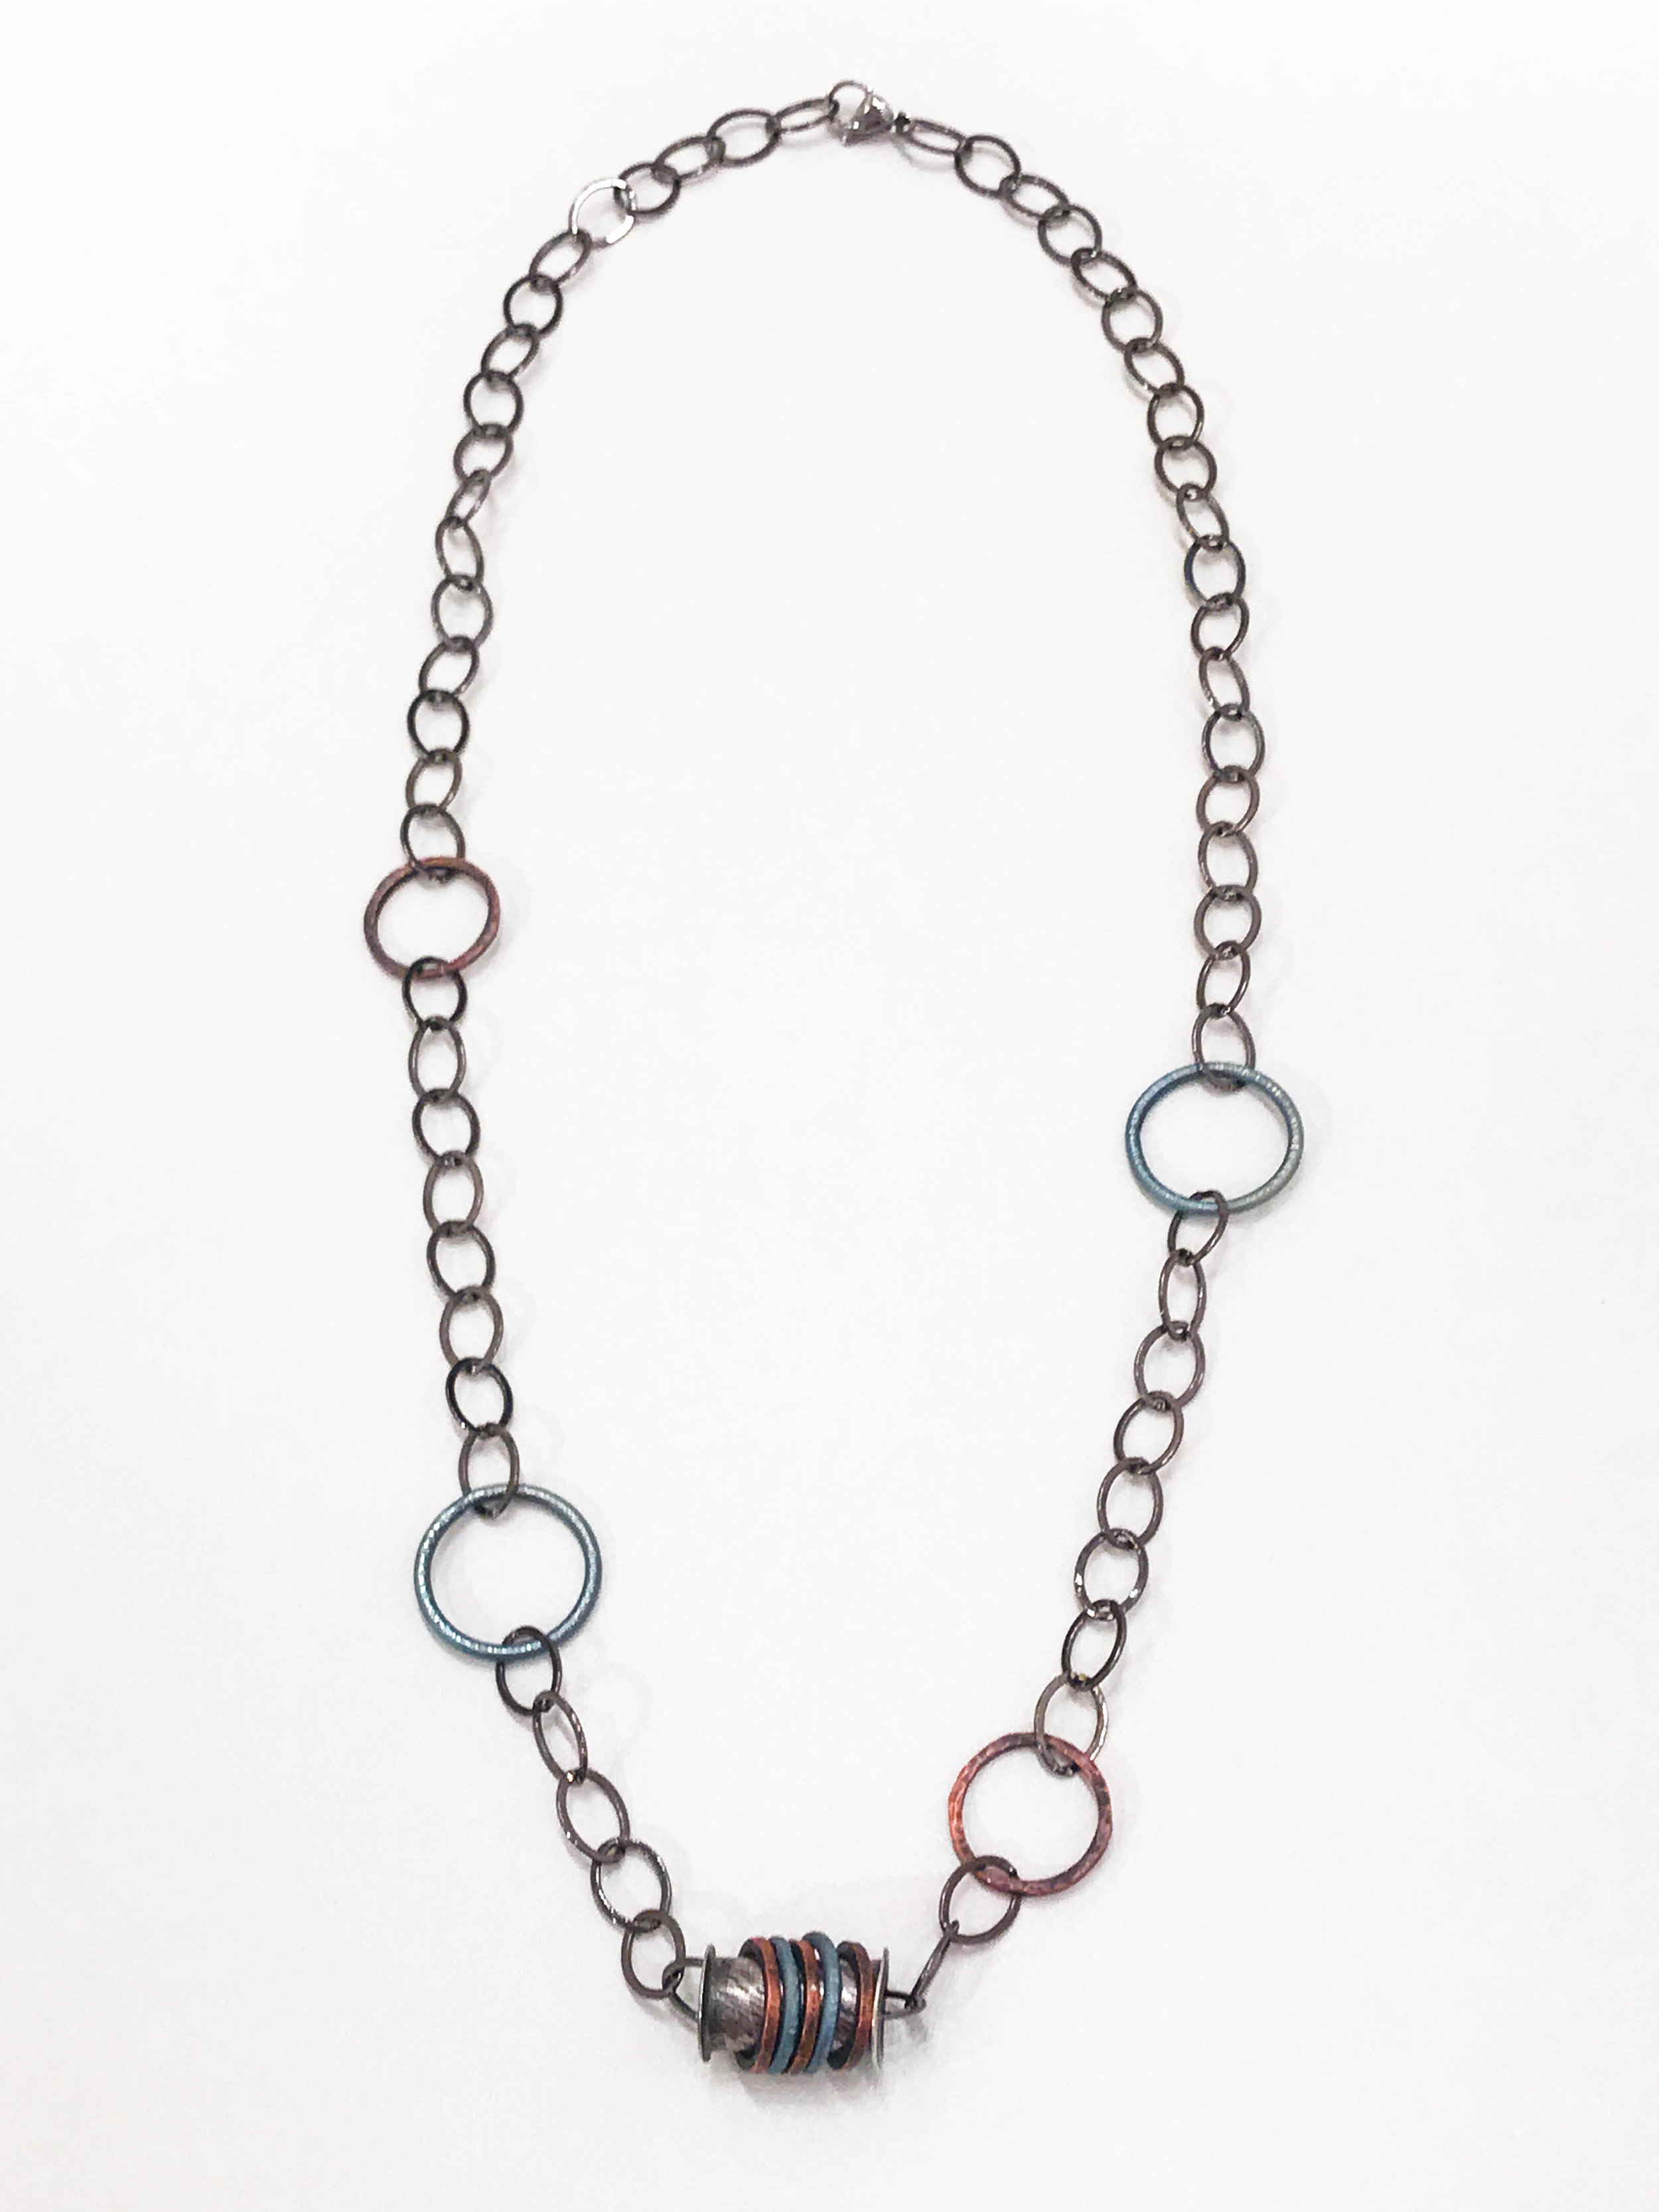 "Necklace with sterling silver, titanium, and copper centerpiece, on titanium, copper, and steel ring chain; 13 1/2"", $120"